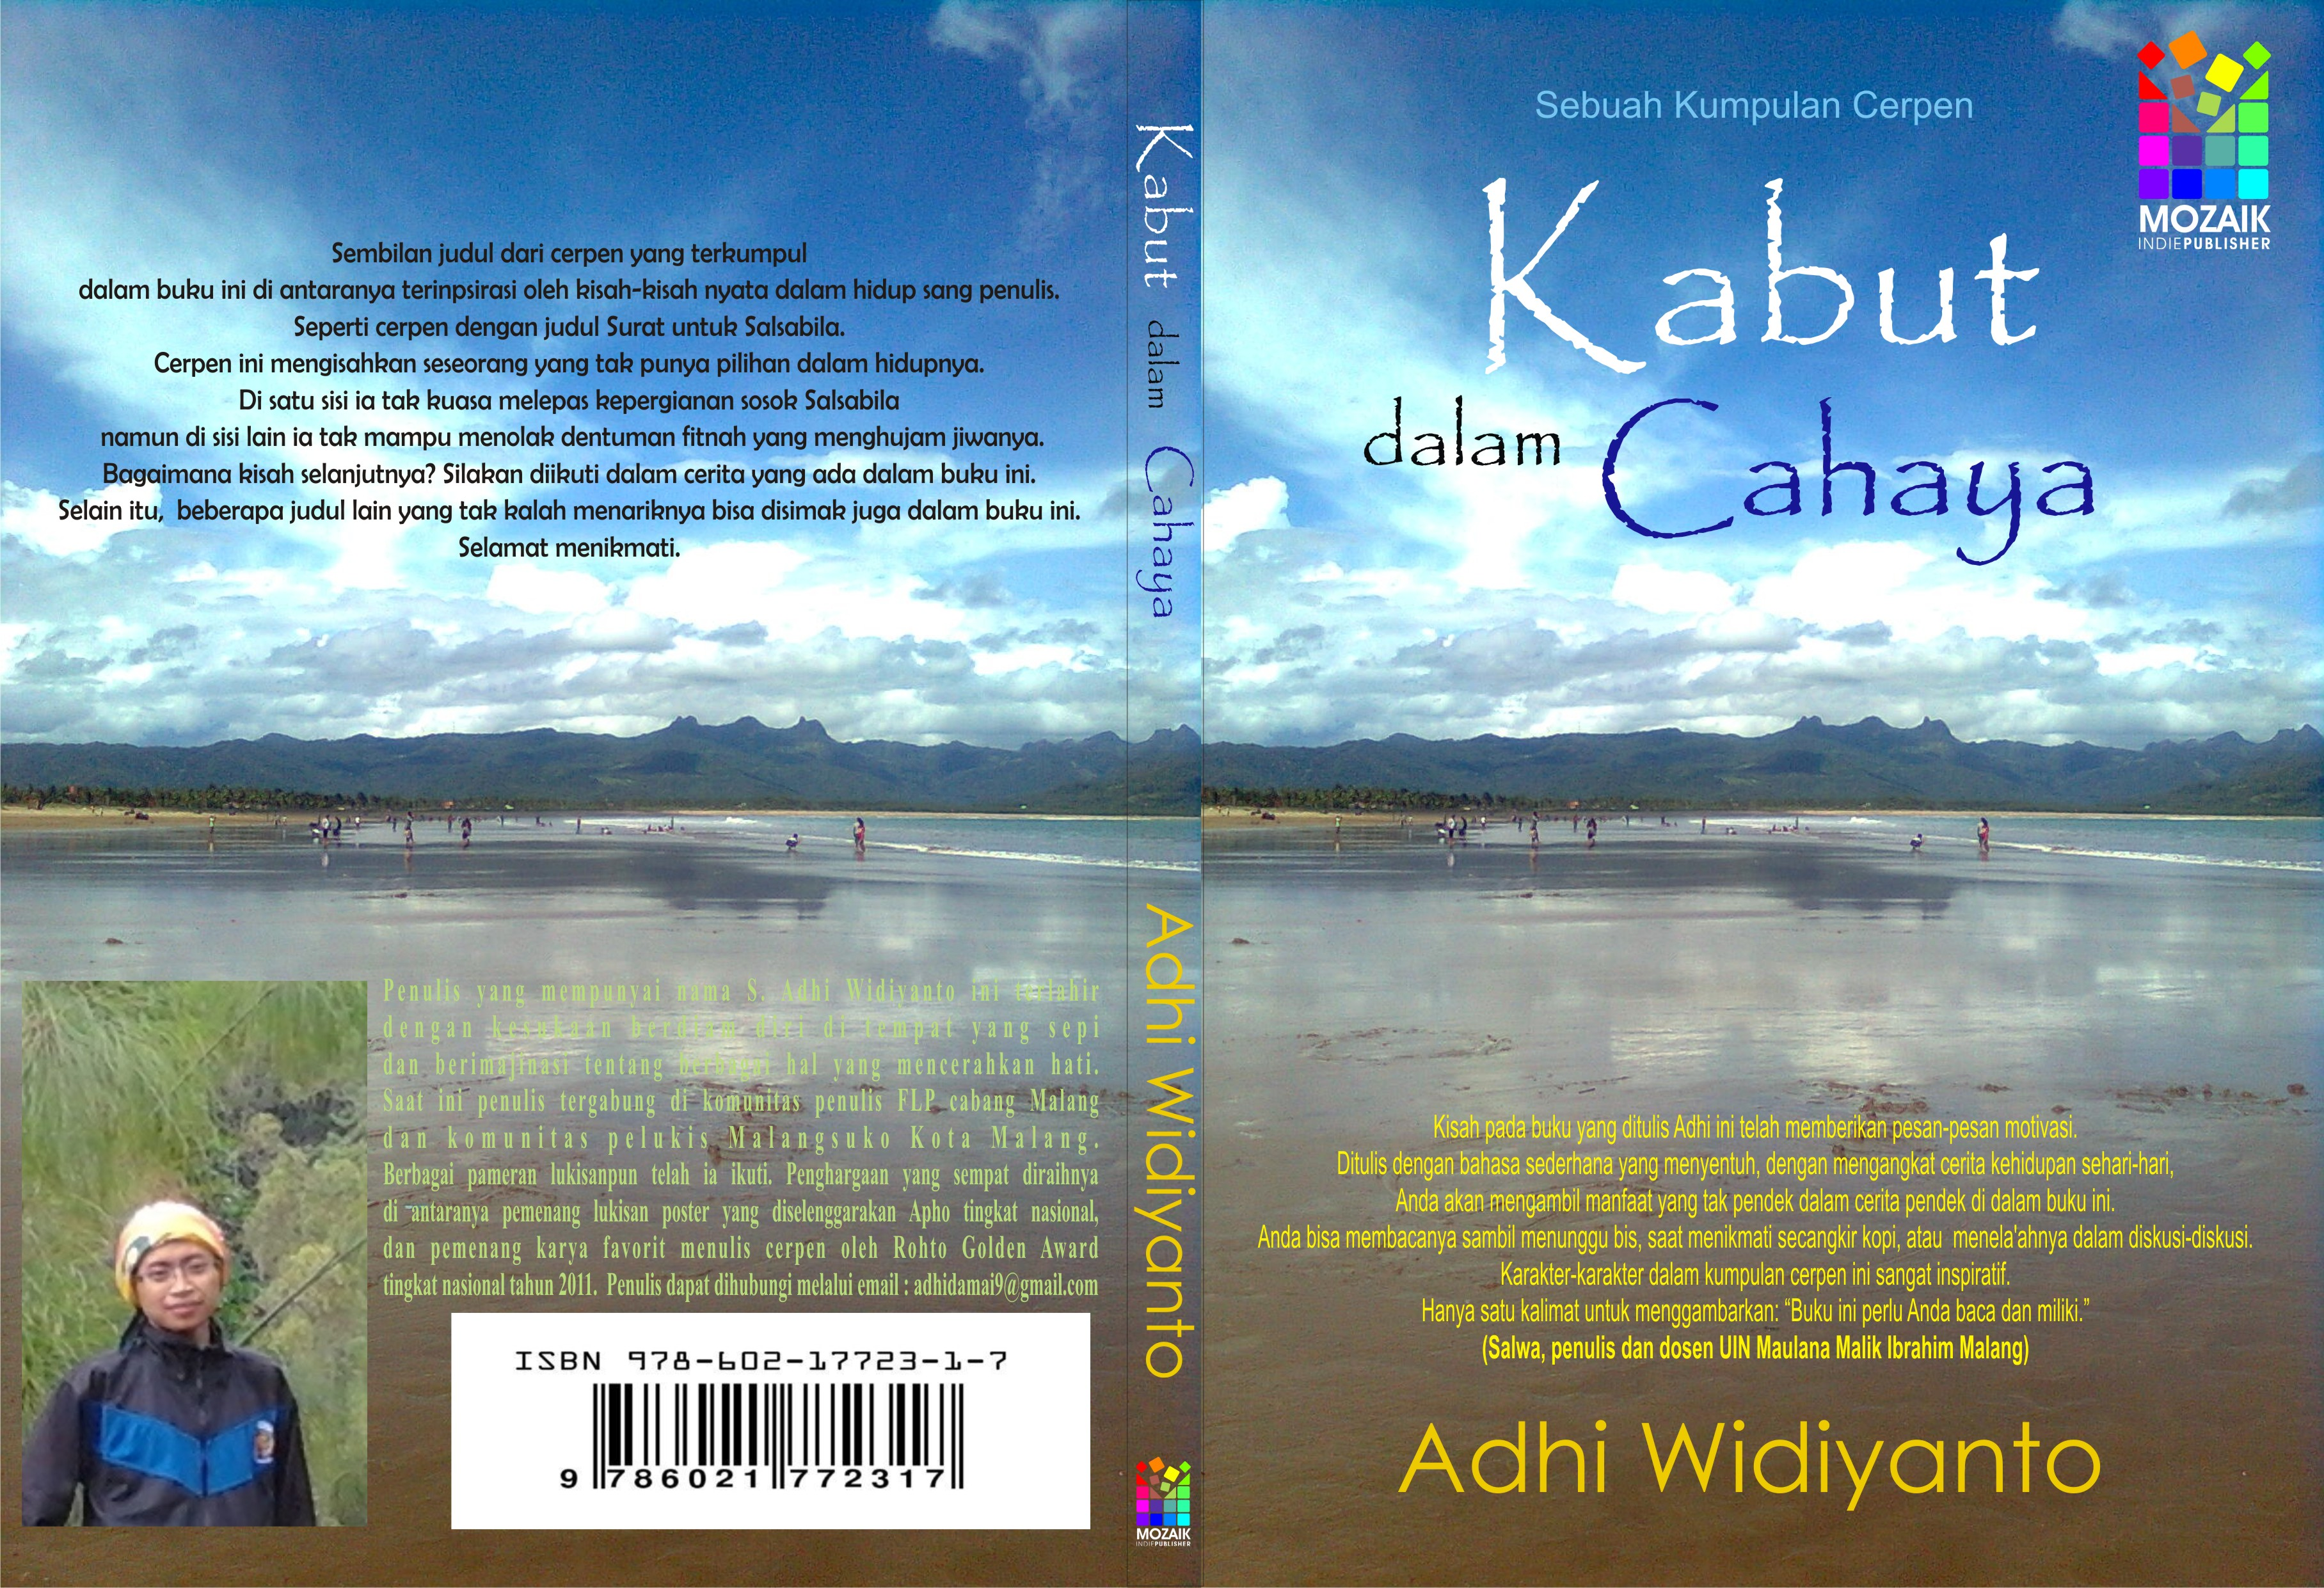 Cara membuat cover Cd/DVD dan Label Cd/Dvd menggunakan adobe photoshop photoshop